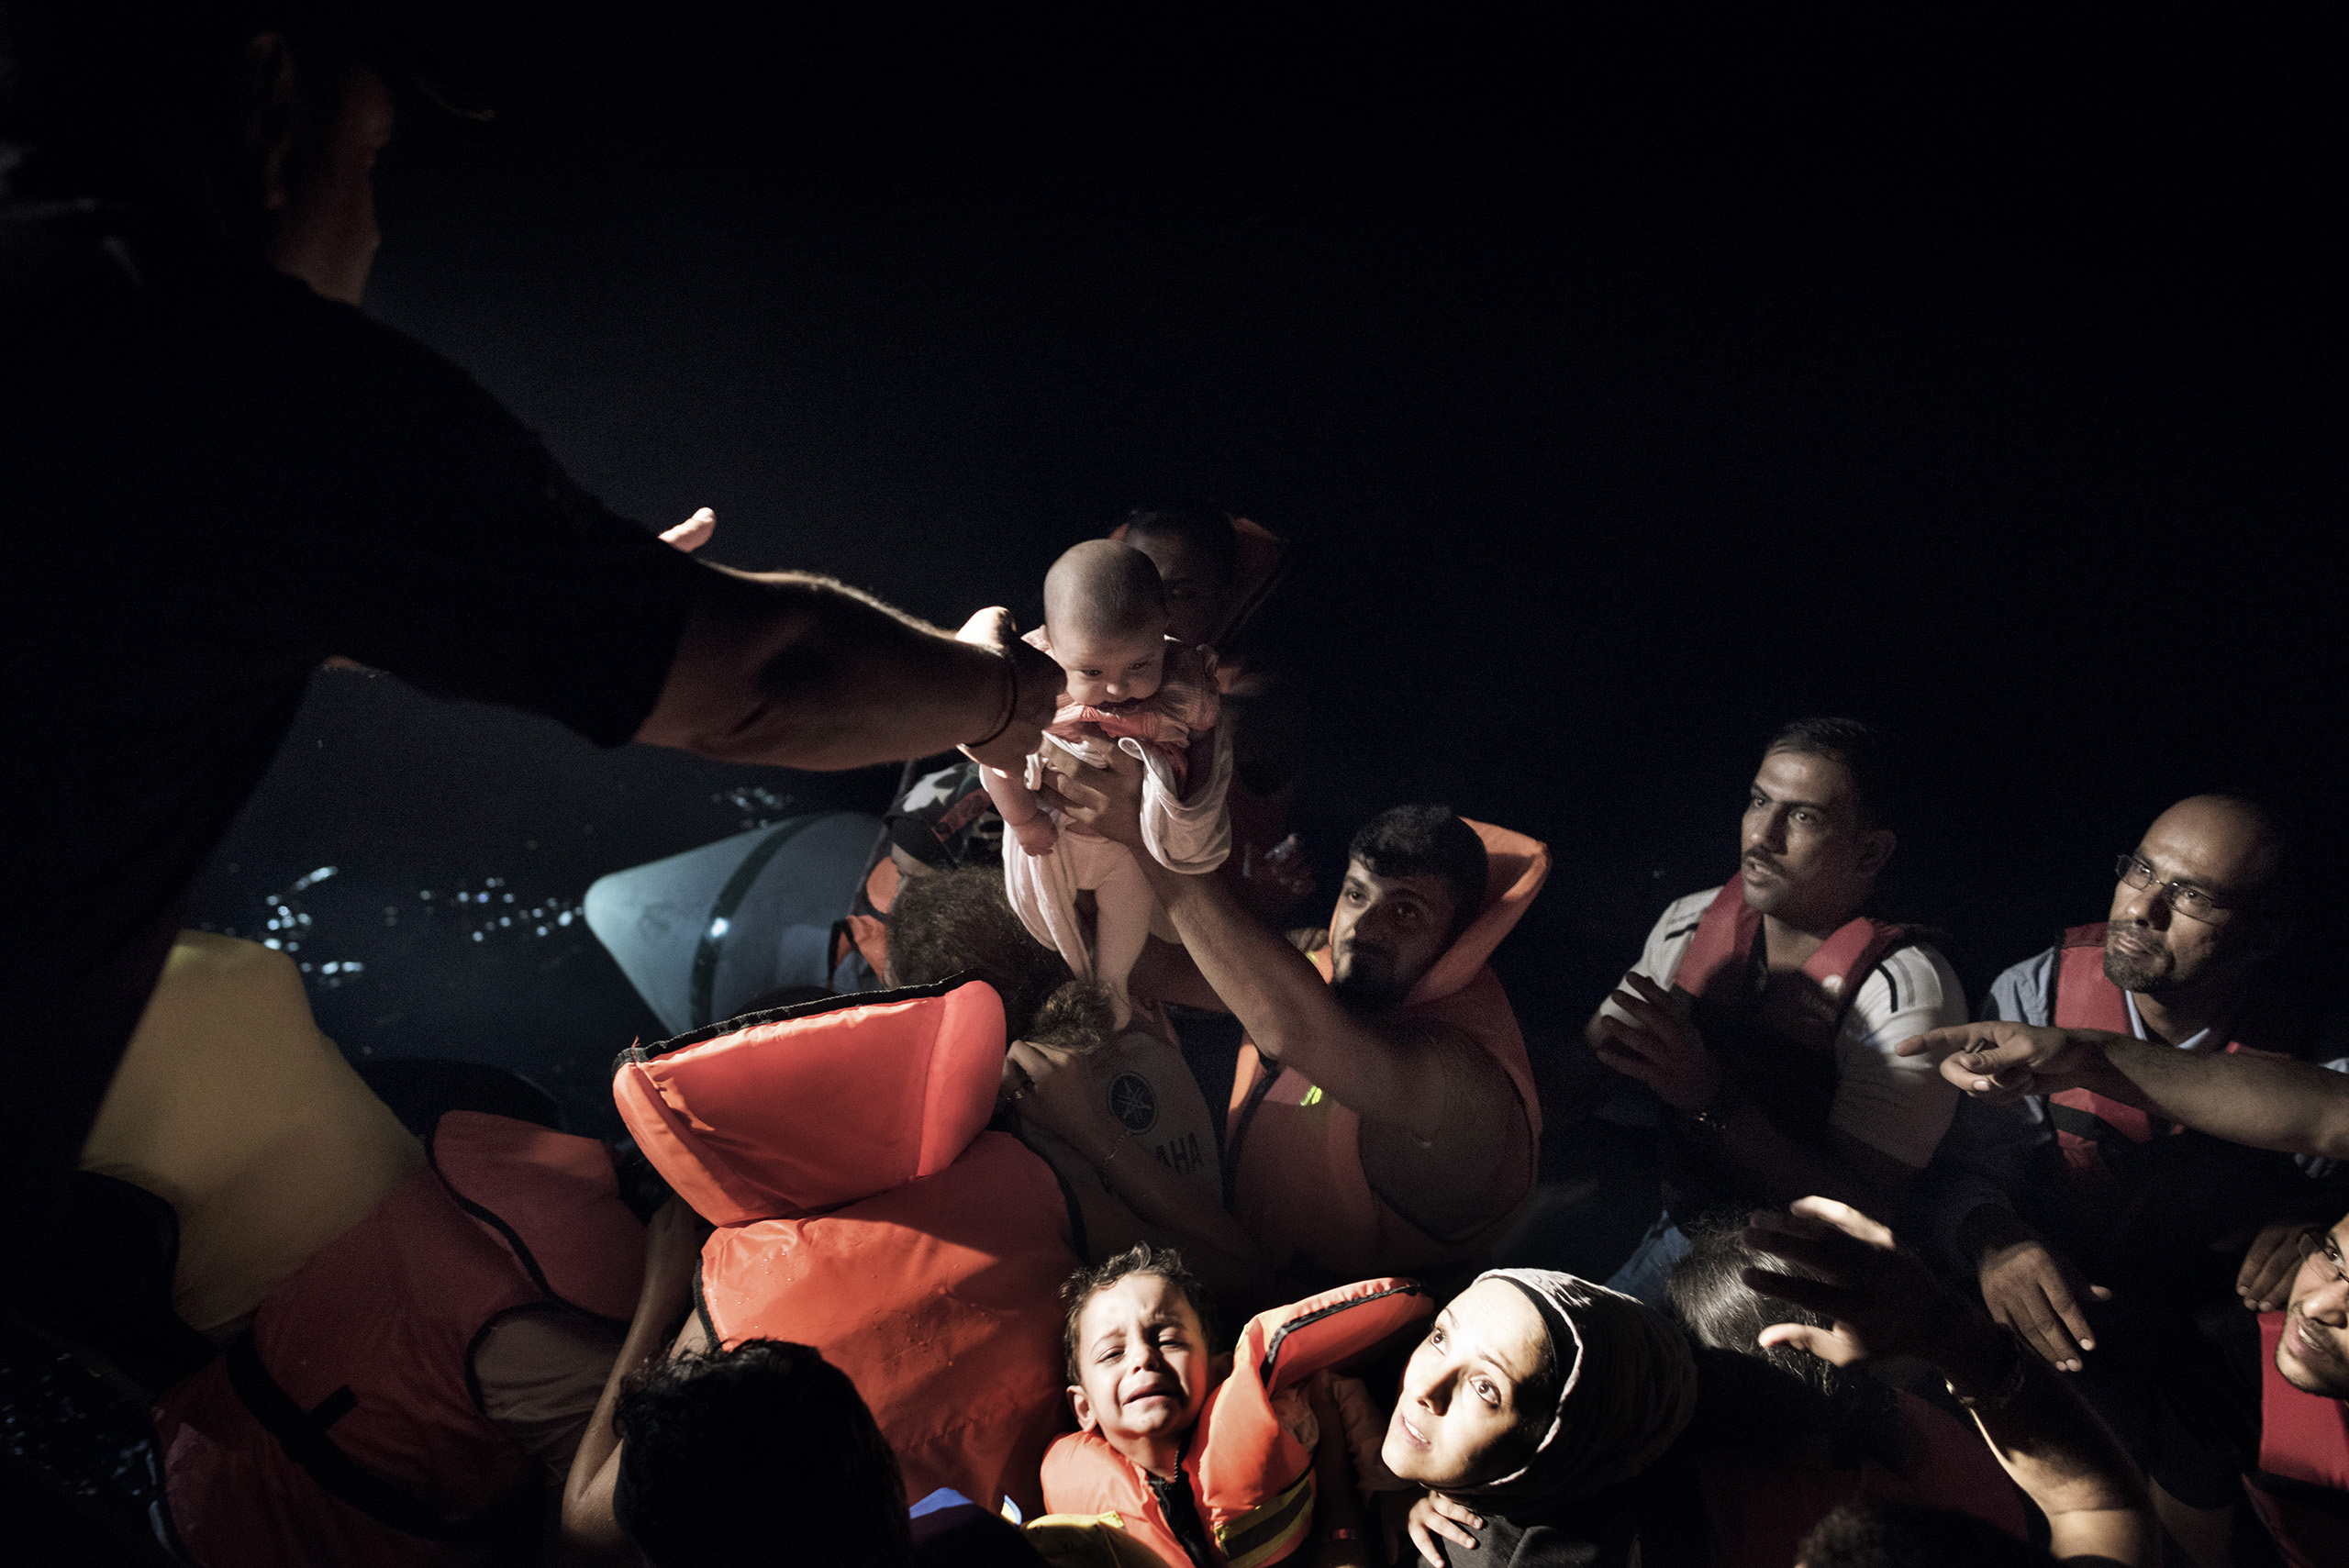 A Syrian migrant aboard a flimsy rubber motorboat hands his one-month-old baby to Greek coast guards, who have arrived to rescue the boat full of migrants from dangerous waters near the border between Greece and Turkey.  Sept. 7, 2015.